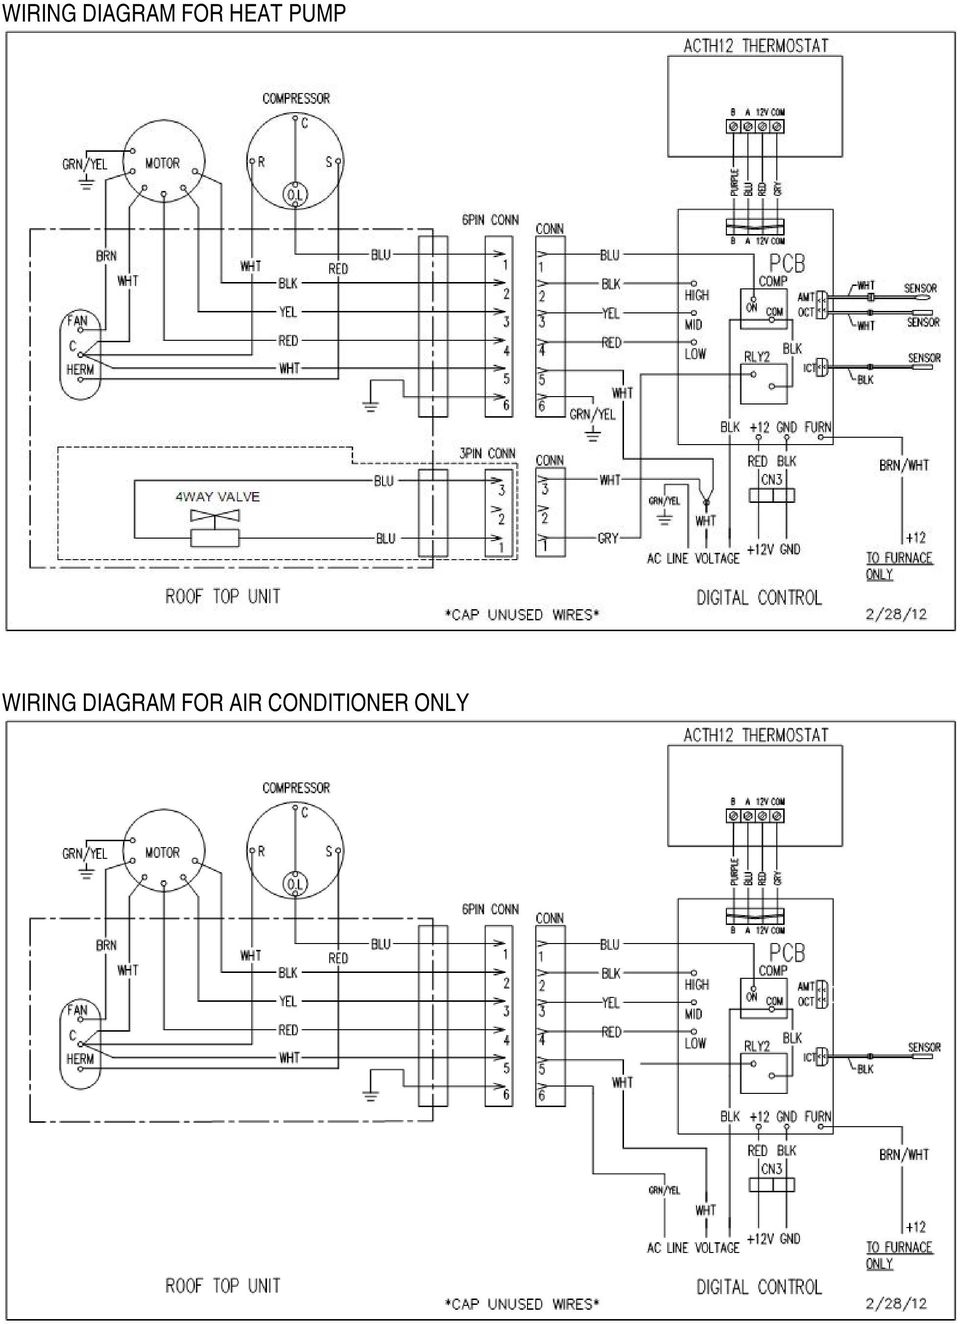 Air Conditioner Heat Pump Digital Control For Ducted System Advent Thermostat Wiring Diagram